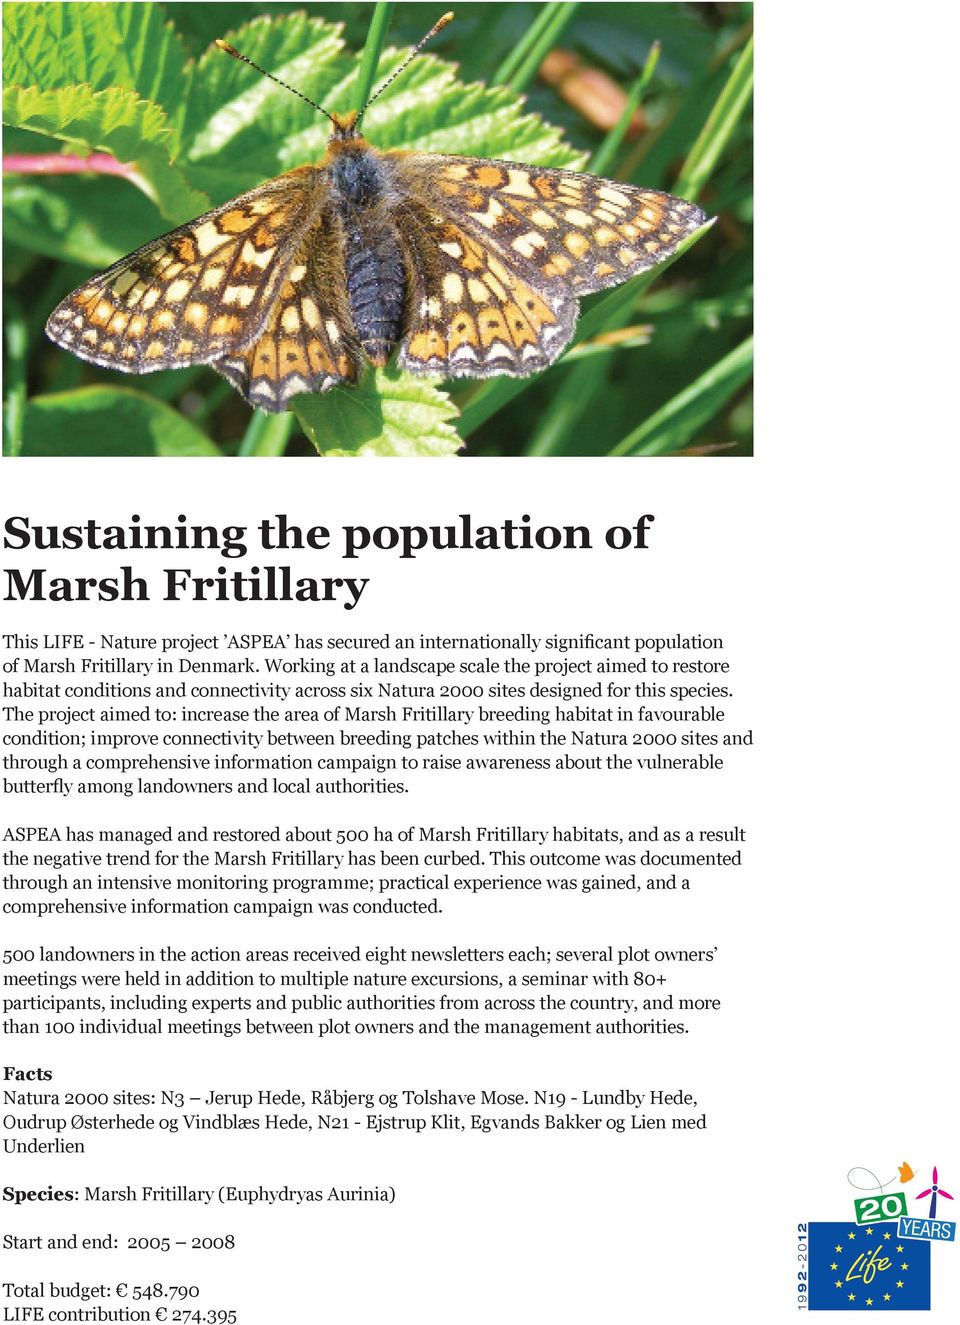 The project aimed to: increase the area of Marsh Fritillary breeding habitat in favourable condition; improve connectivity between breeding patches within the Natura 2000 sites and through a